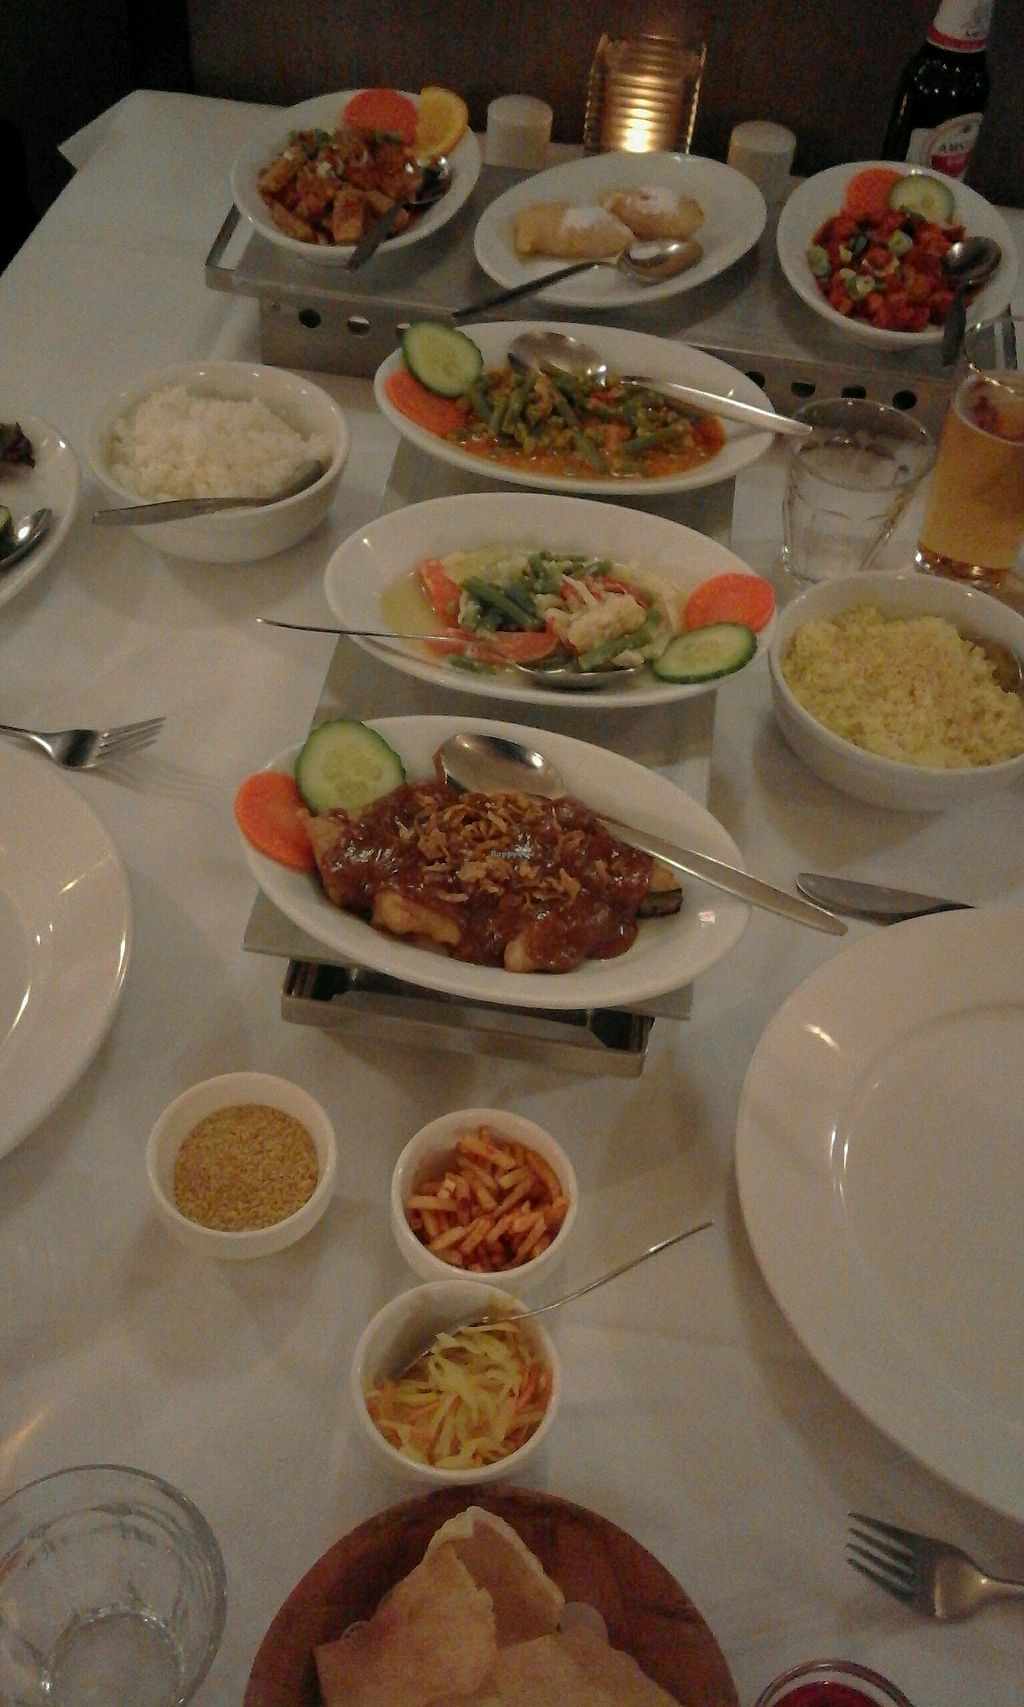 """Photo of Puri Mas  by <a href=""""/members/profile/v_mdj"""">v_mdj</a> <br/>little vegan 'rijsttafel' for 2 <br/> January 7, 2018  - <a href='/contact/abuse/image/99176/343993'>Report</a>"""